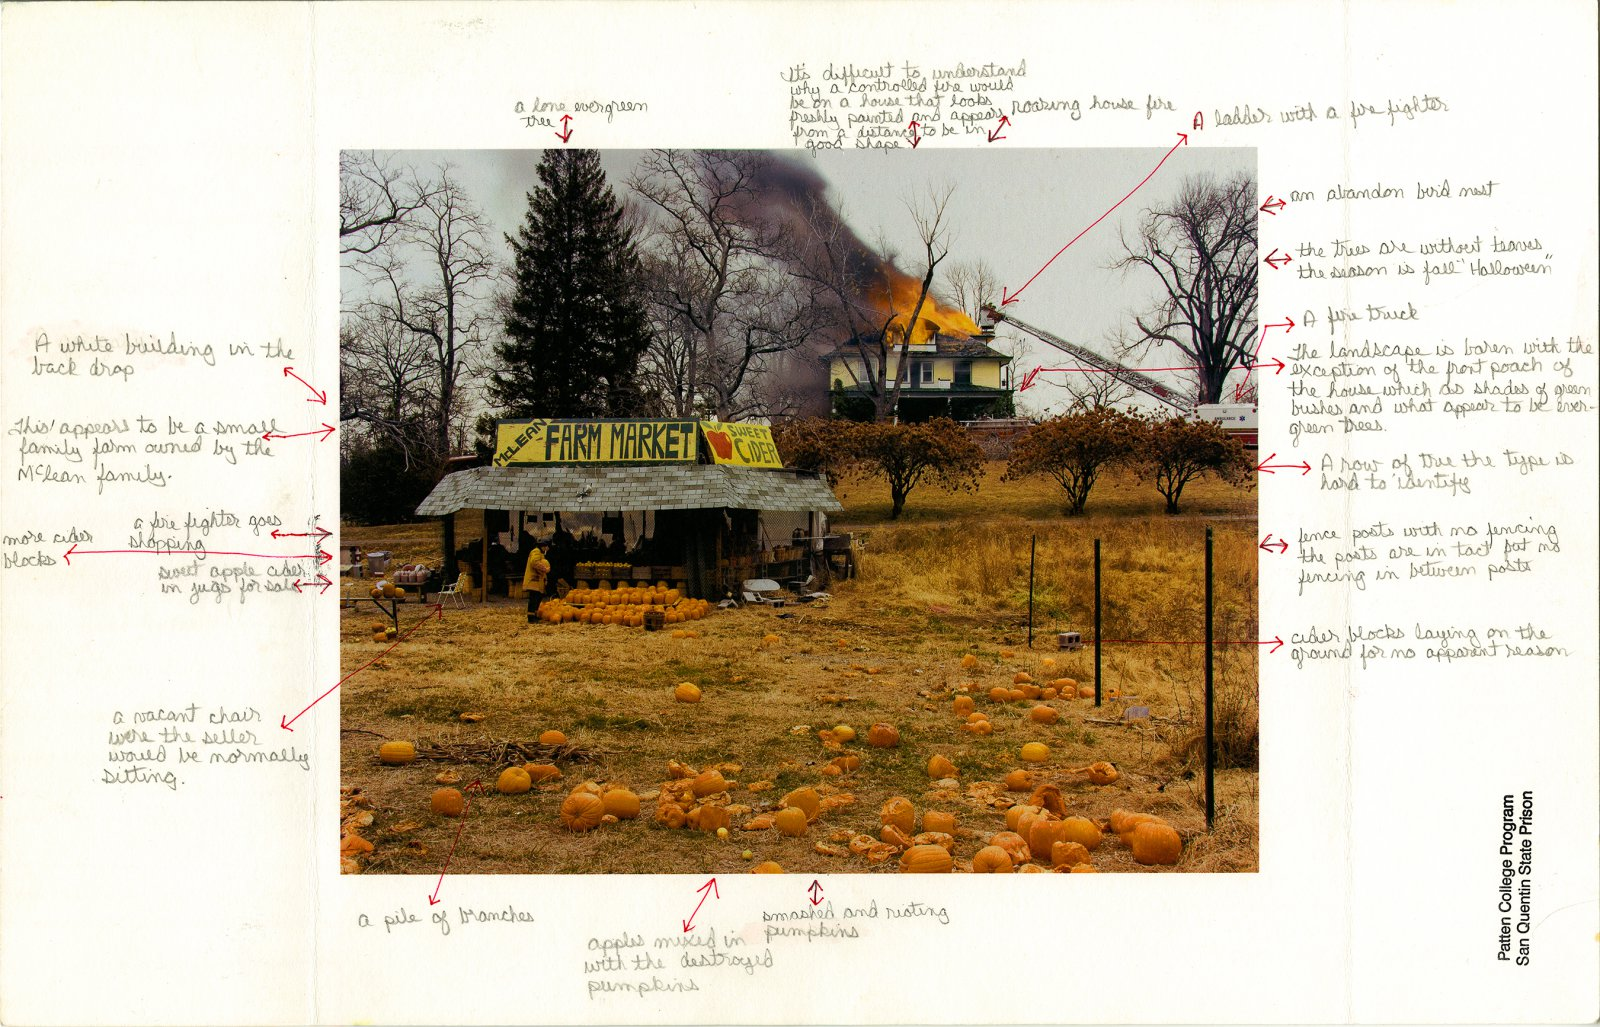 Nigel Poor and Frankie Smith, Mapping Joel Sternfeld, side A, 2011/12. Inkjet print and ink.